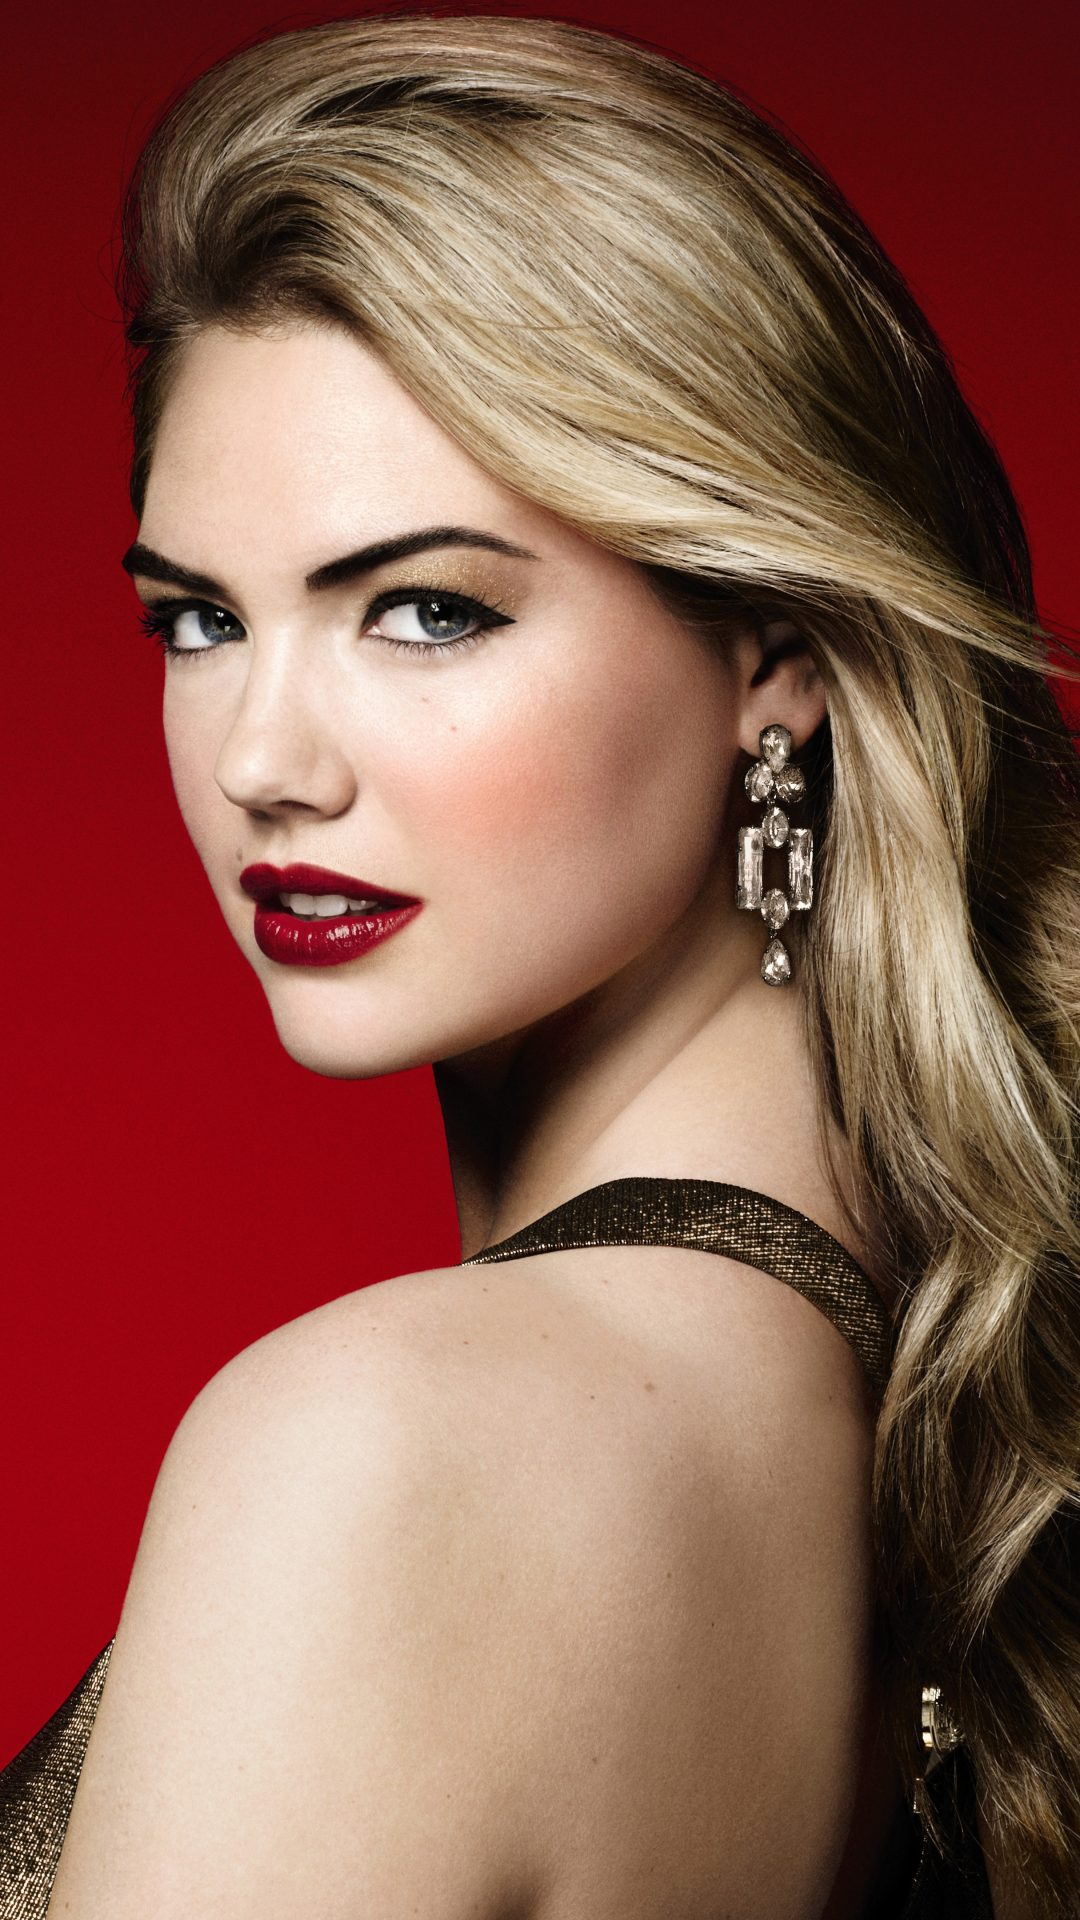 Wallpaper Size For Iphone X Kate Upton 8k Uhd Wallpaper